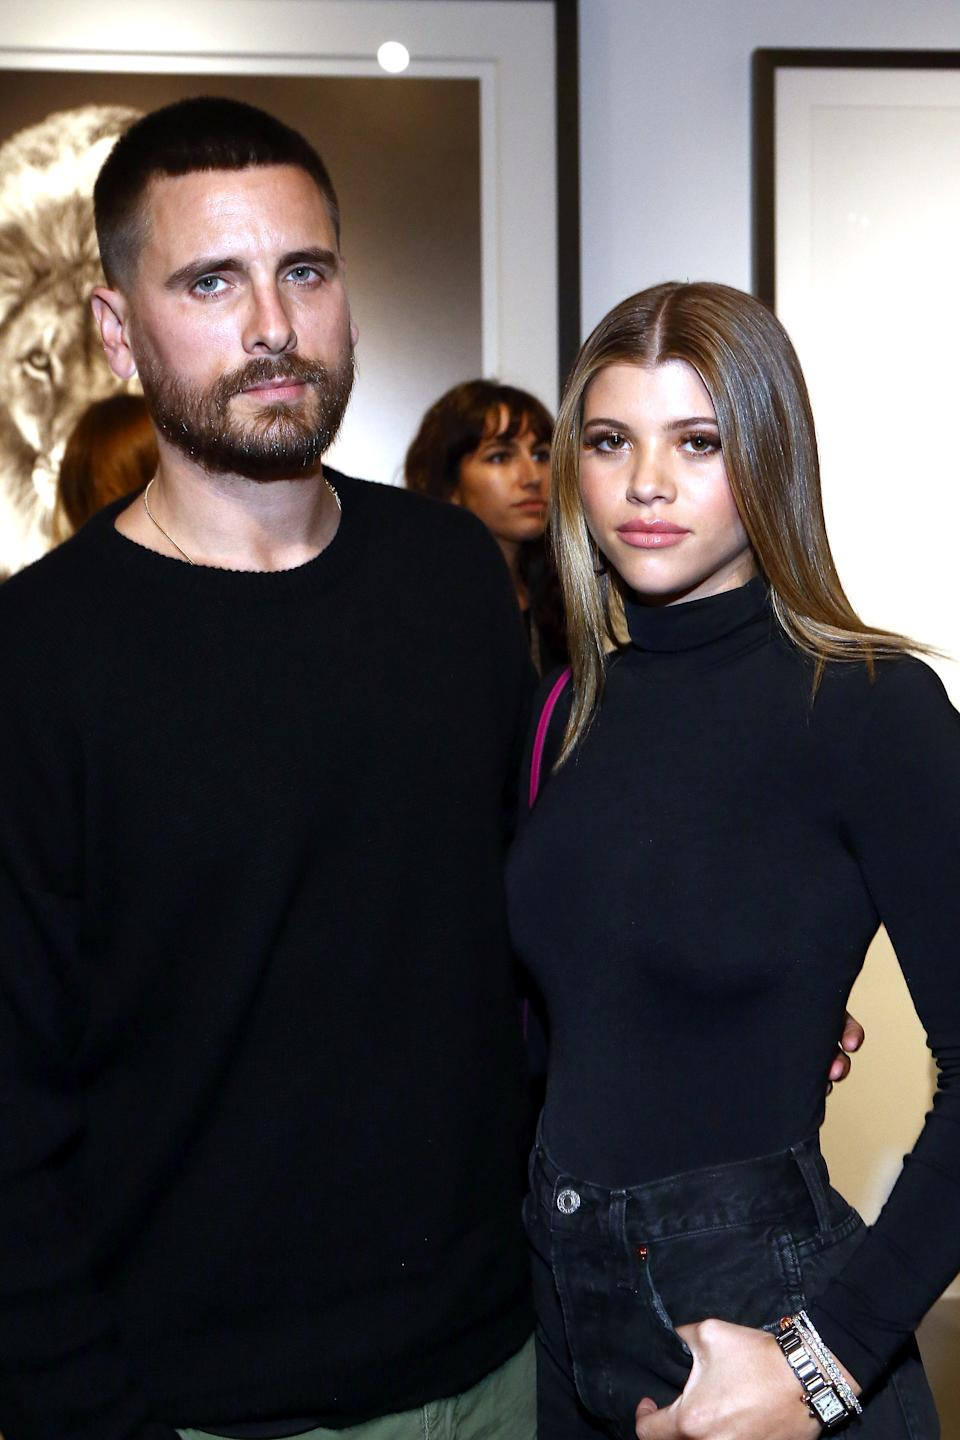 Scott Disick with girlfriend Sofia Richie in October. (Photo: Tommaso Boddi/Getty Images for Maddox Gallery)